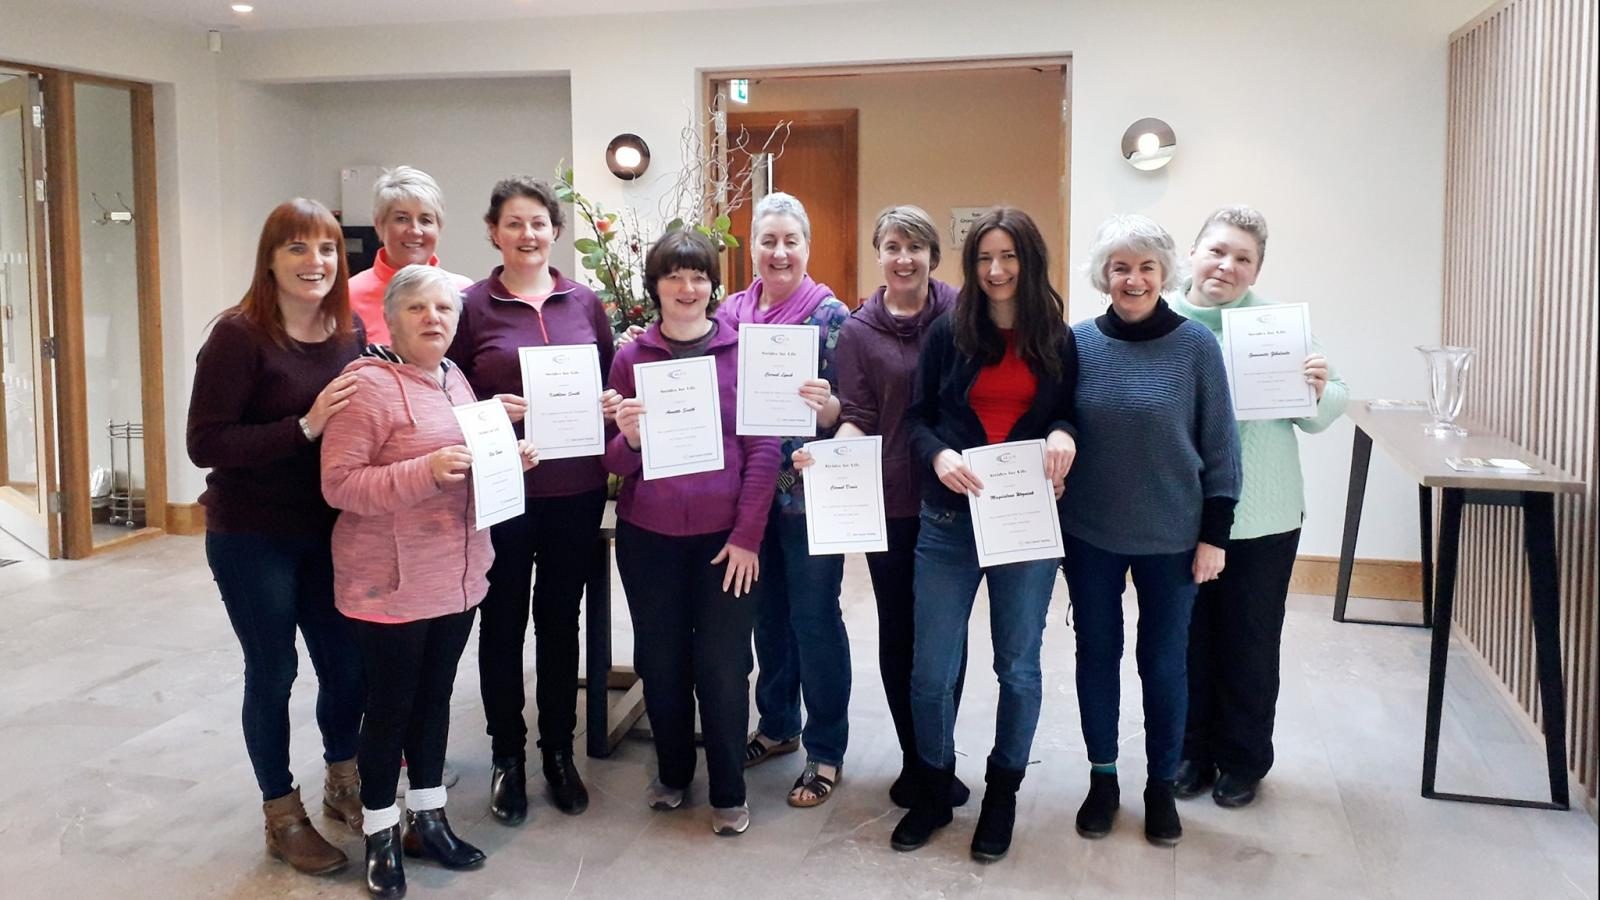 Cuan Cancer Social Support and Wellness Group